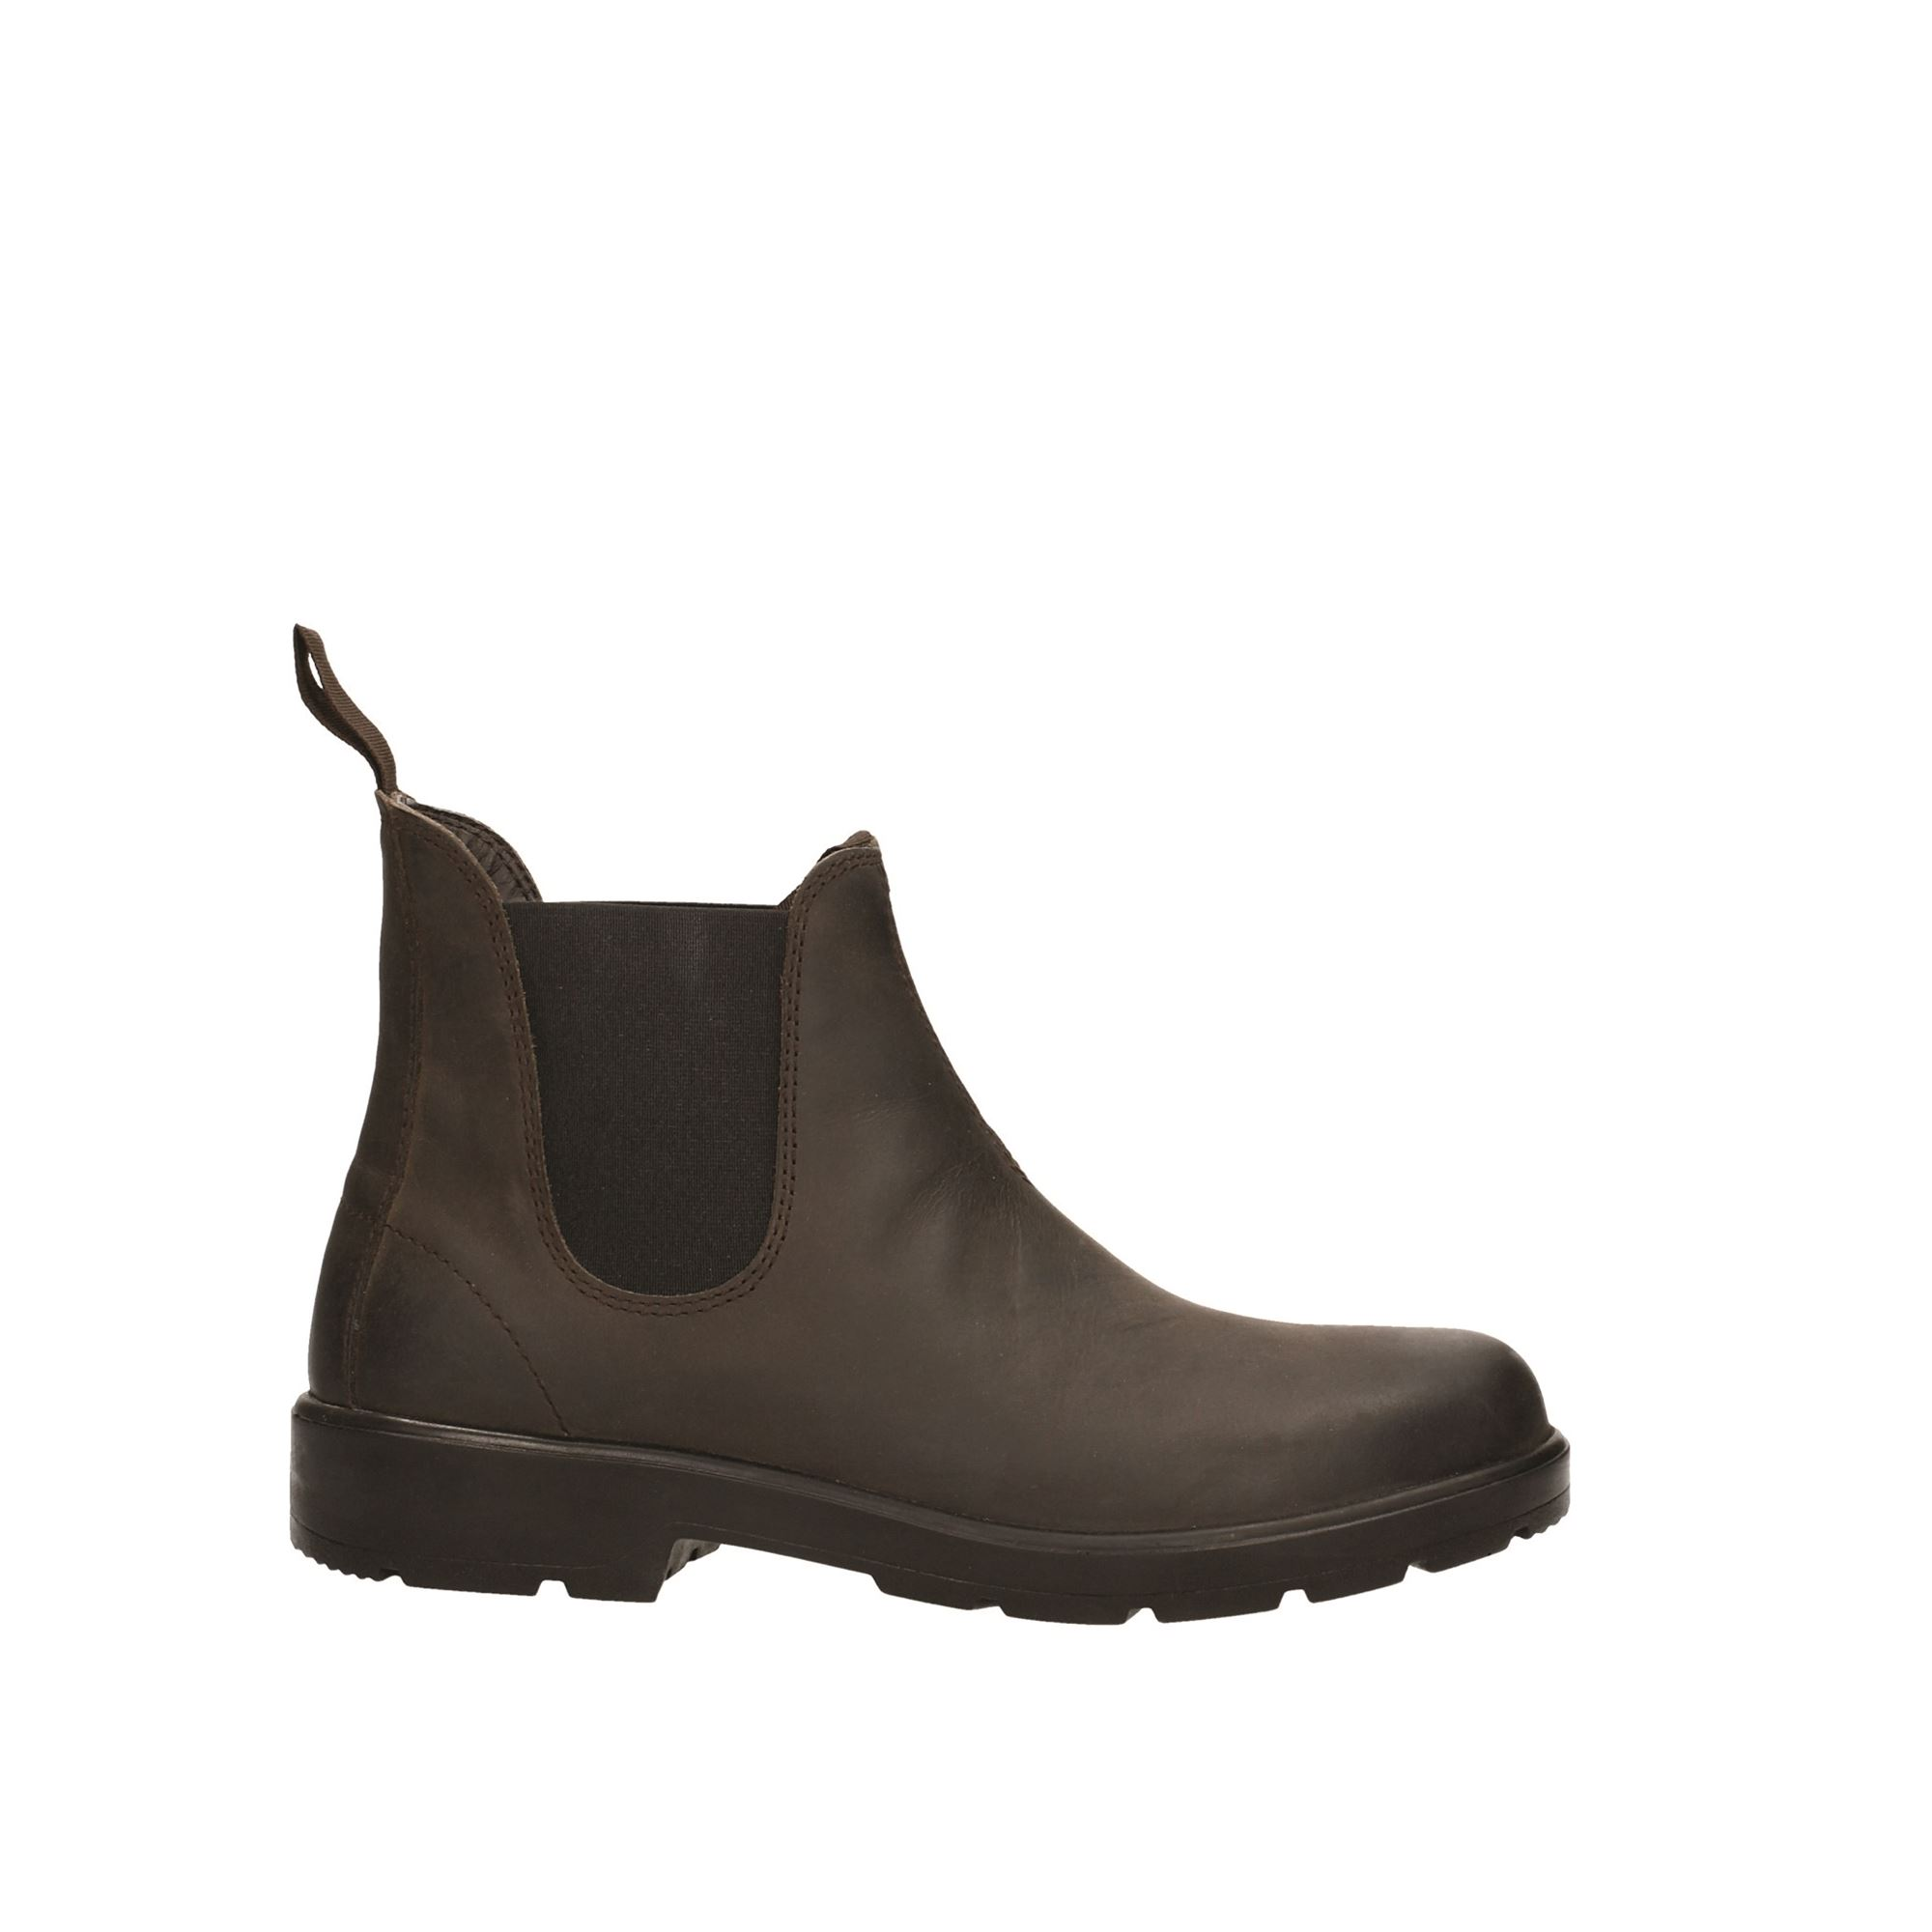 Tata Italia Shoes Man Stivaletti Brown 1207